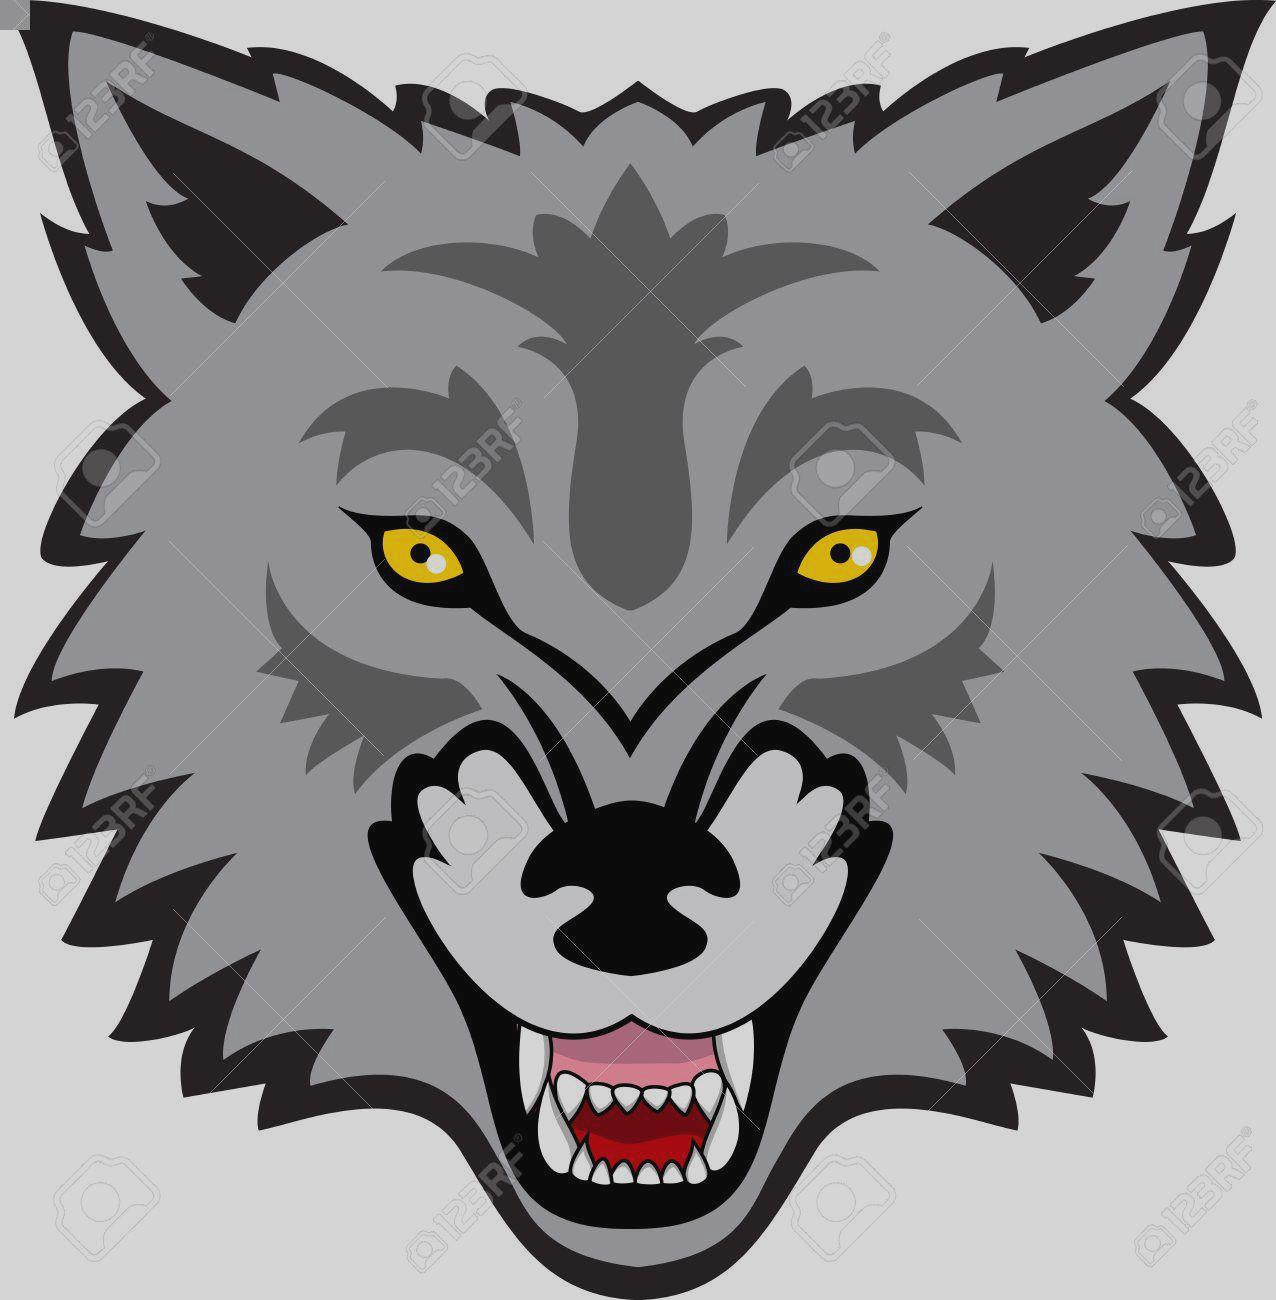 1276x1300 Clip Art 1 306 Wolf Eyes Stock Vector Illustration And Royalty